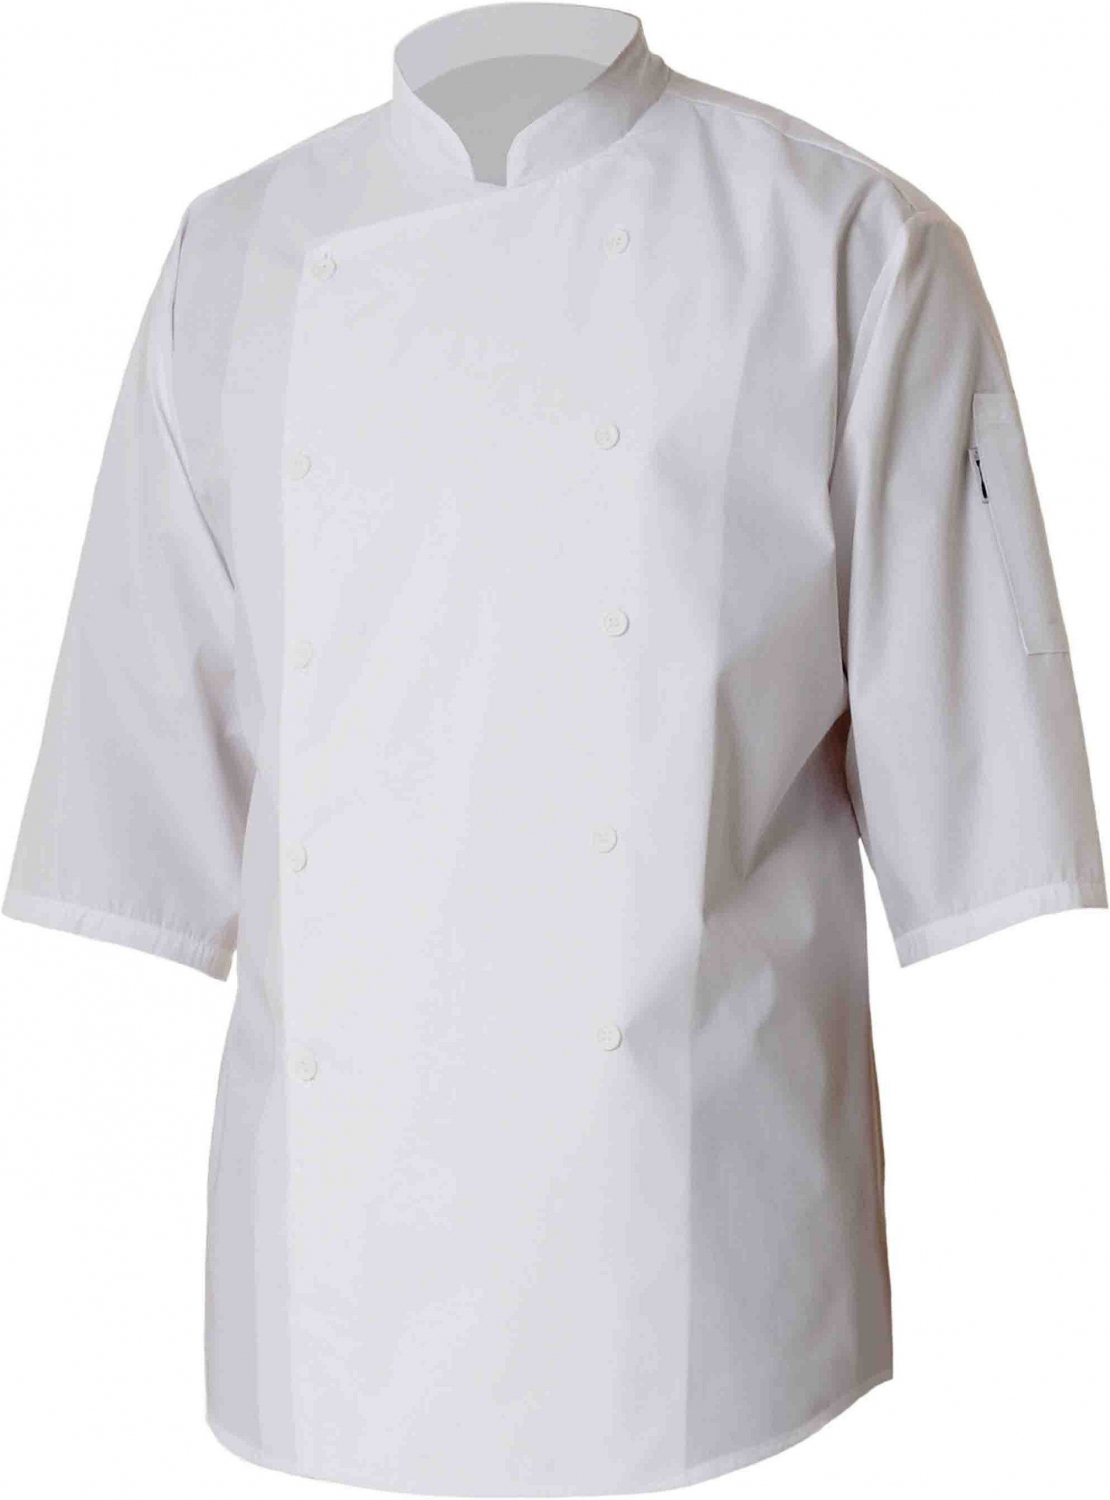 Chef Works S100-WHT 3/4 Sleeve Chef Shirt, White